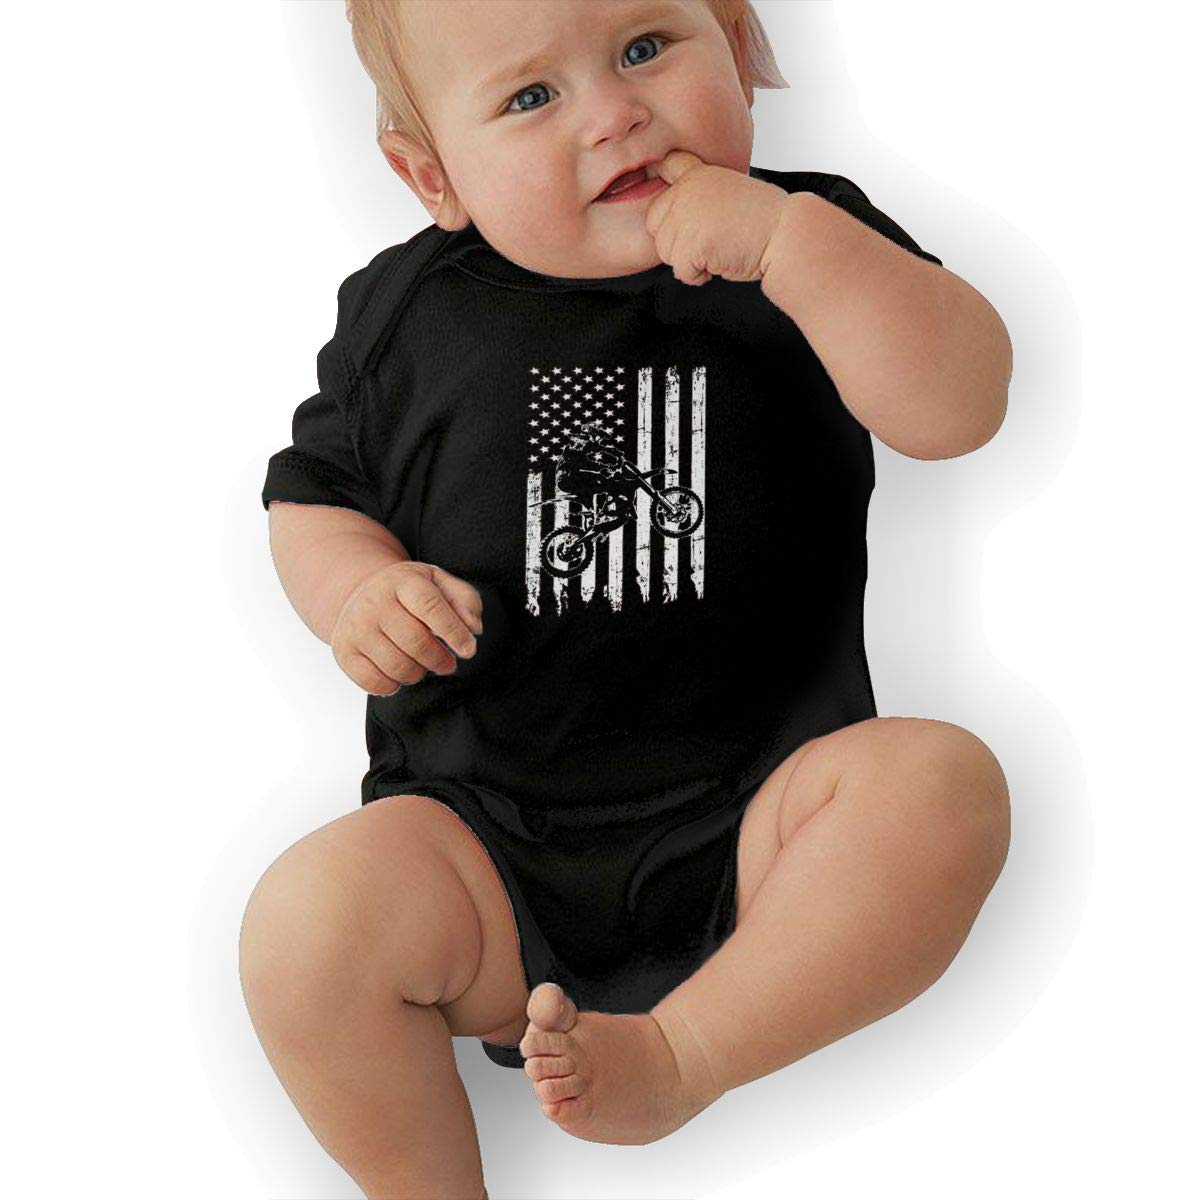 Bodysuits Clothes Onesies Jumpsuits Outfits Black HappyLifea Motocross Dirt Bike Baby Pajamas